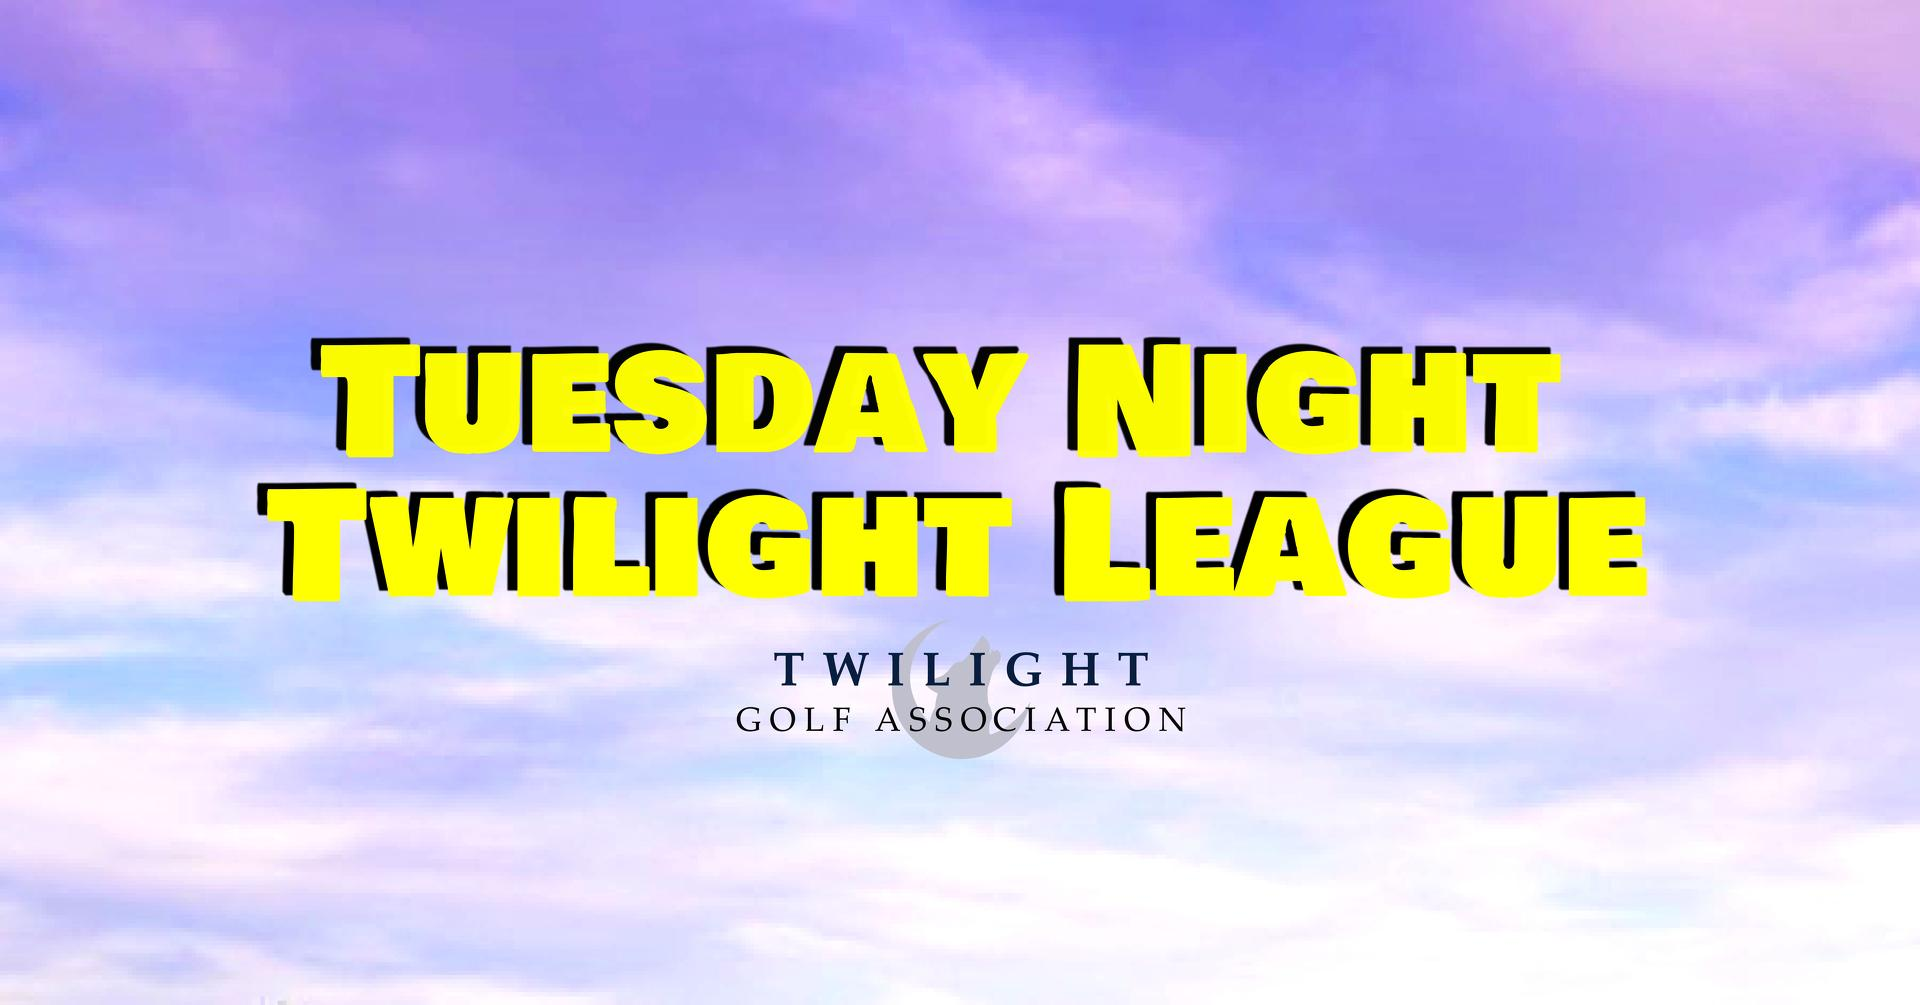 Tuesday Twilight League at Desert Mirage Golf Course